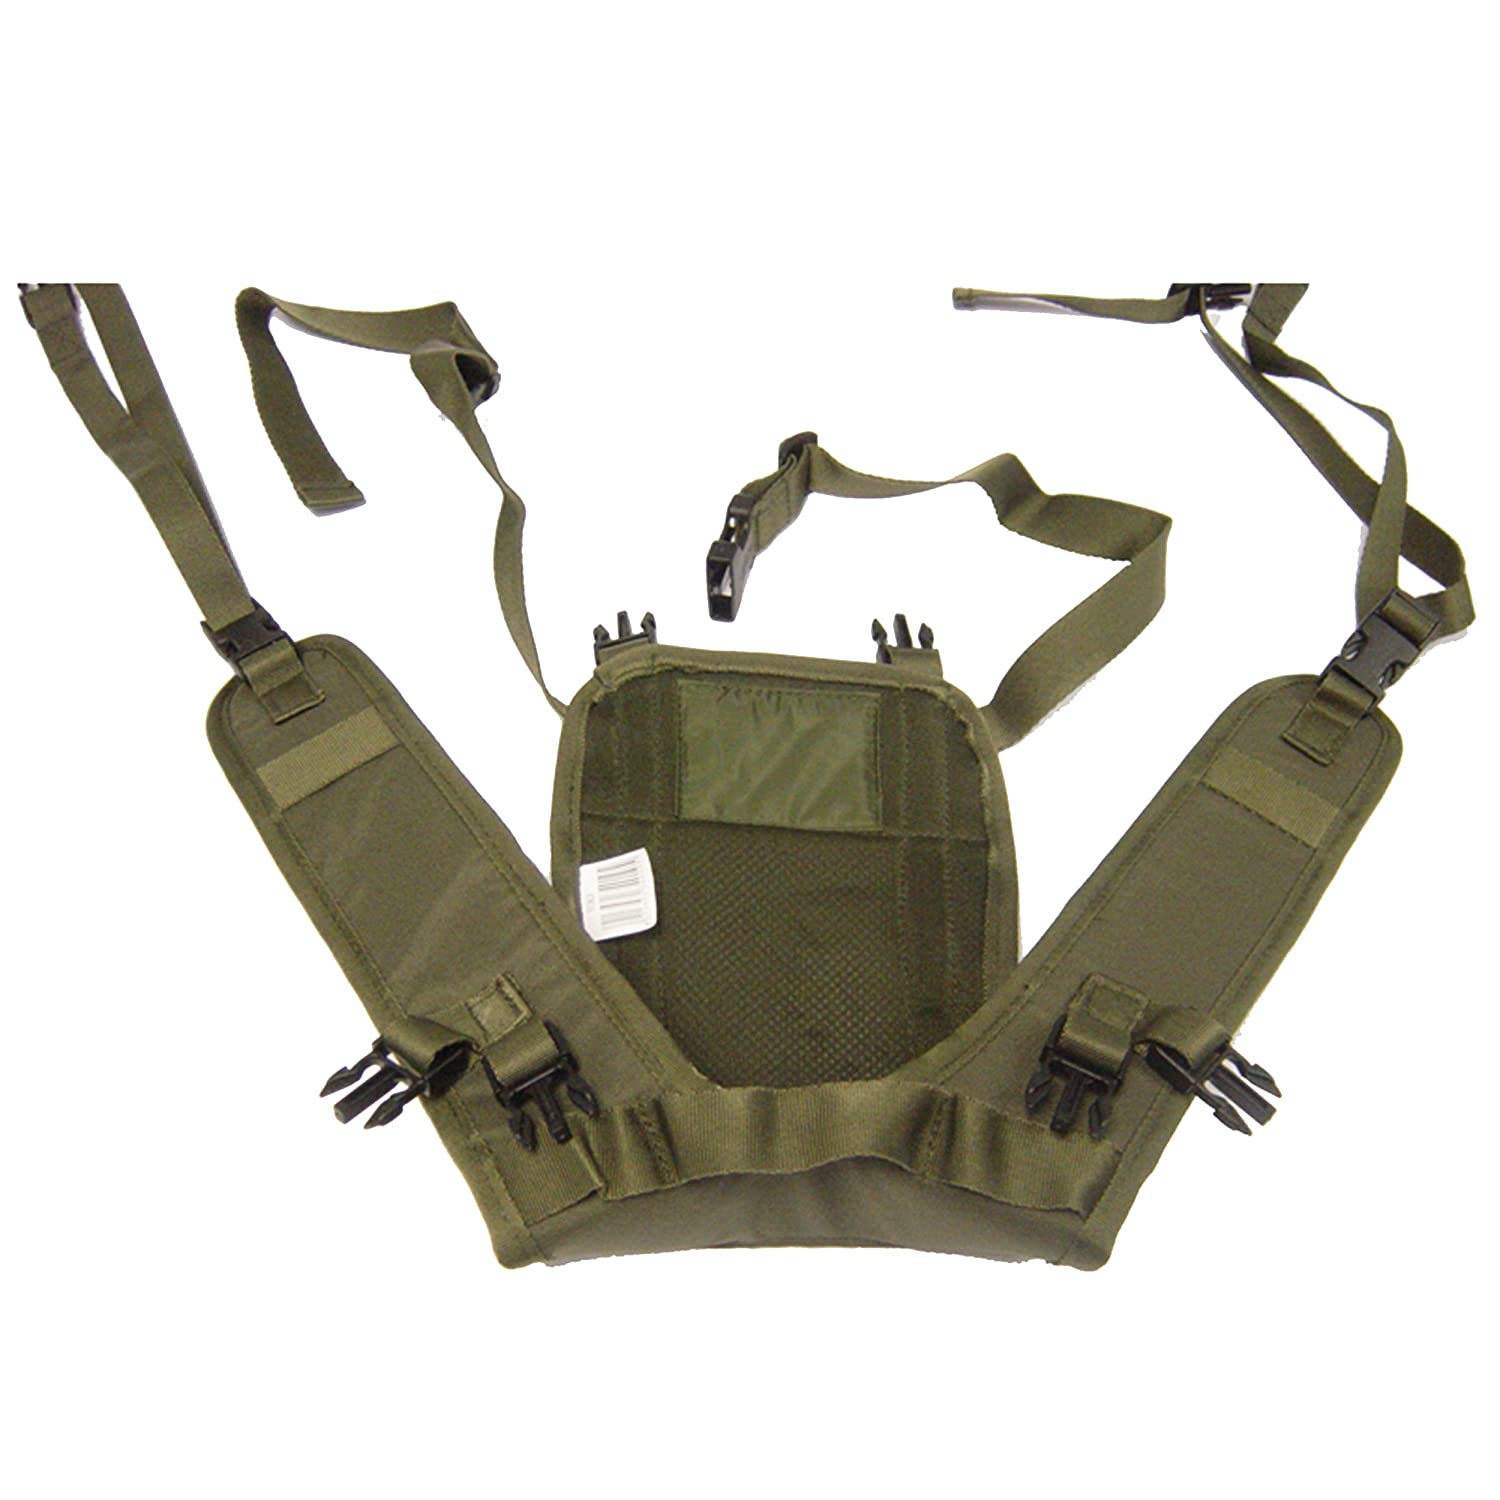 Snugpak Yoke System 92280 Use with Rocket Bergen Pack to Create Day Pack Coyote Tan